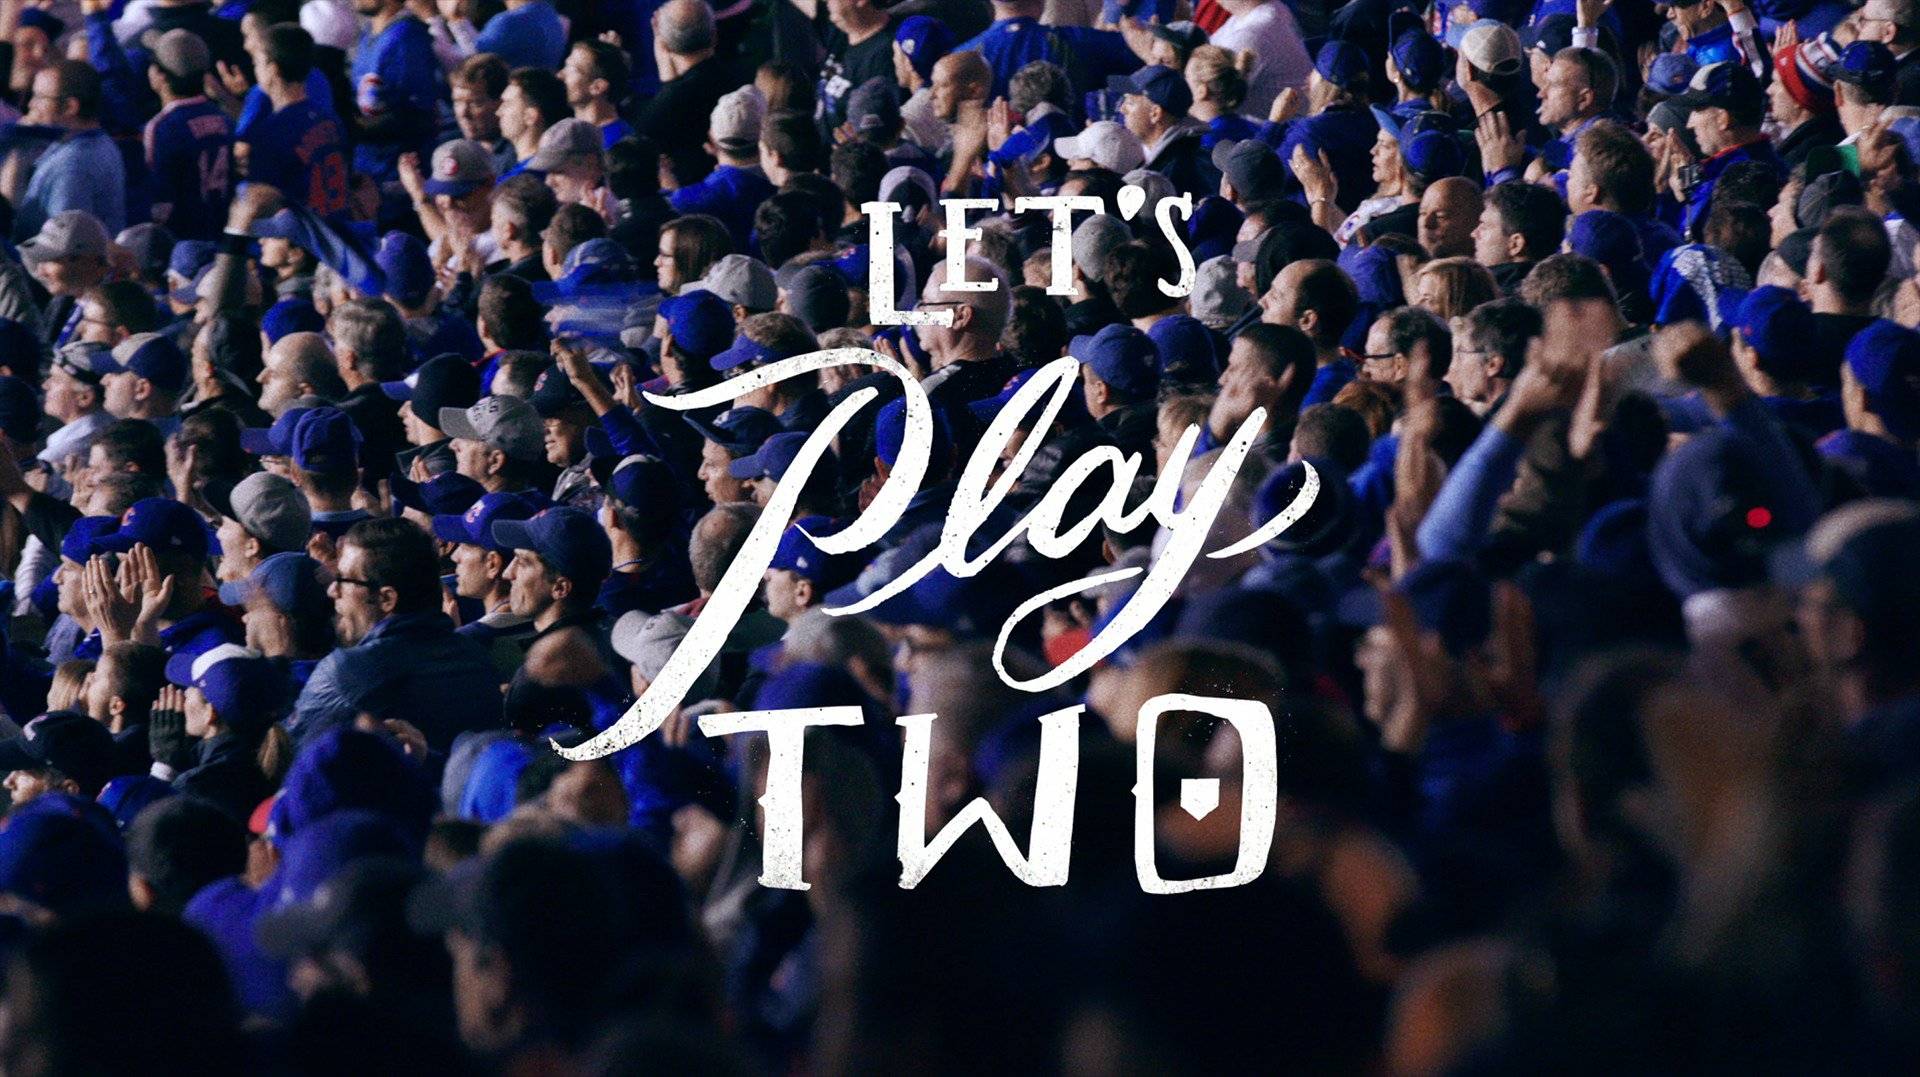 We're thrilled to announce the film, Let's Play Two. ⚾️  #LetsPlayTwo #PearlJam https://t.co/eHyV7jHNJy https://t.co/bg6DLNEtV7